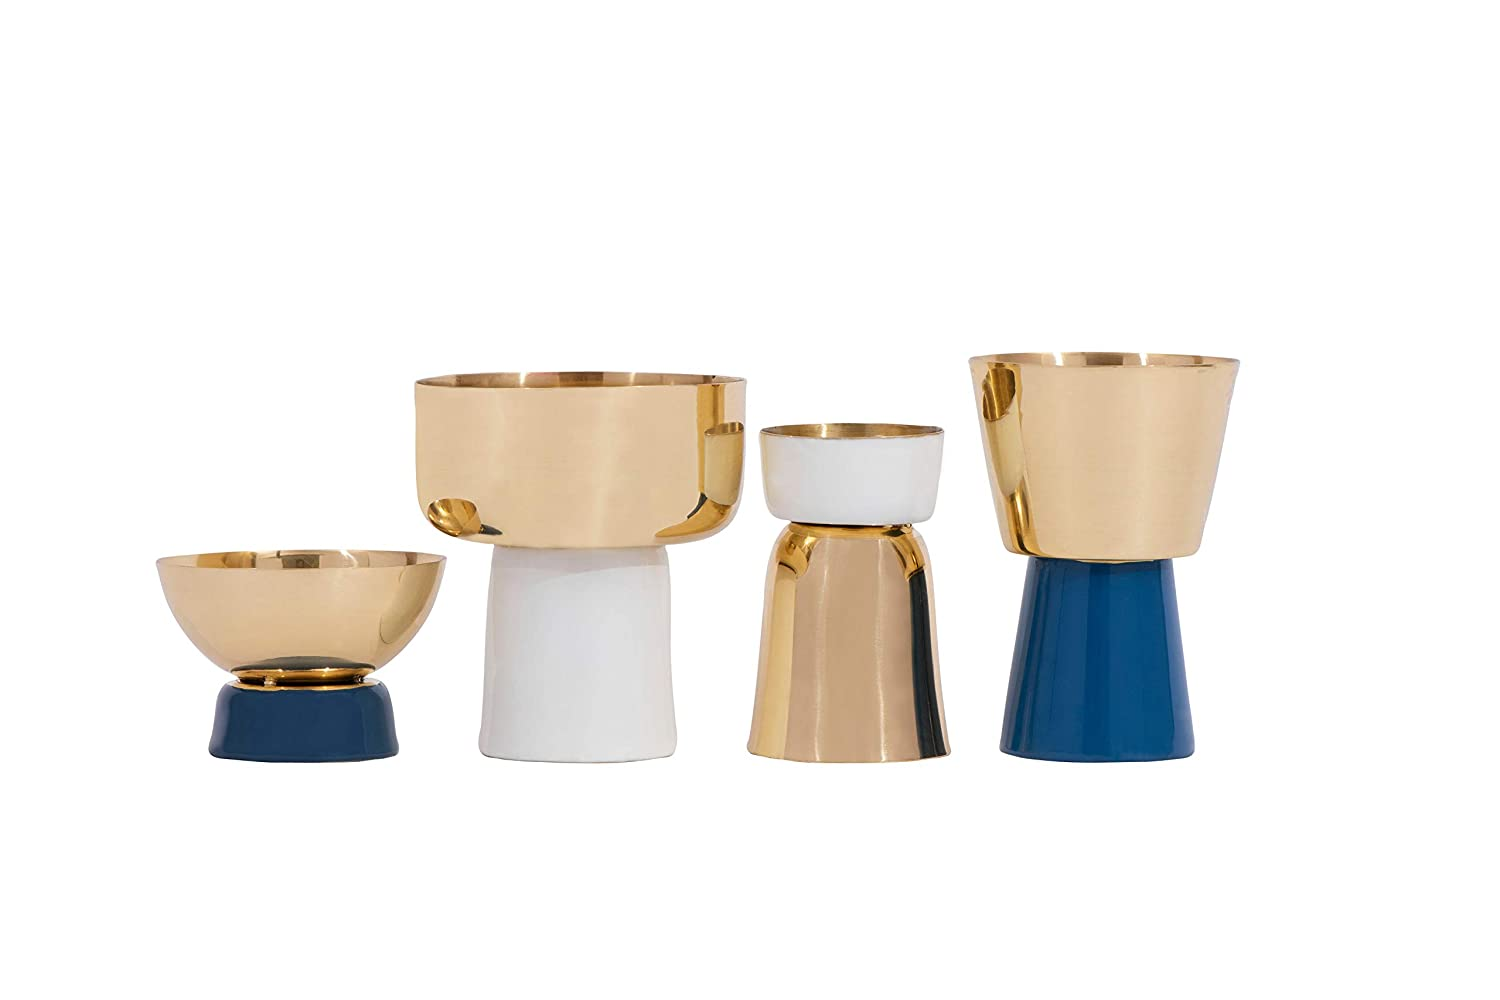 Bloomingville Creative Co-Op Set of 4 Decorative Metal Tealight Gold White /& Blue Finishes 01-Candle Holders AH0140